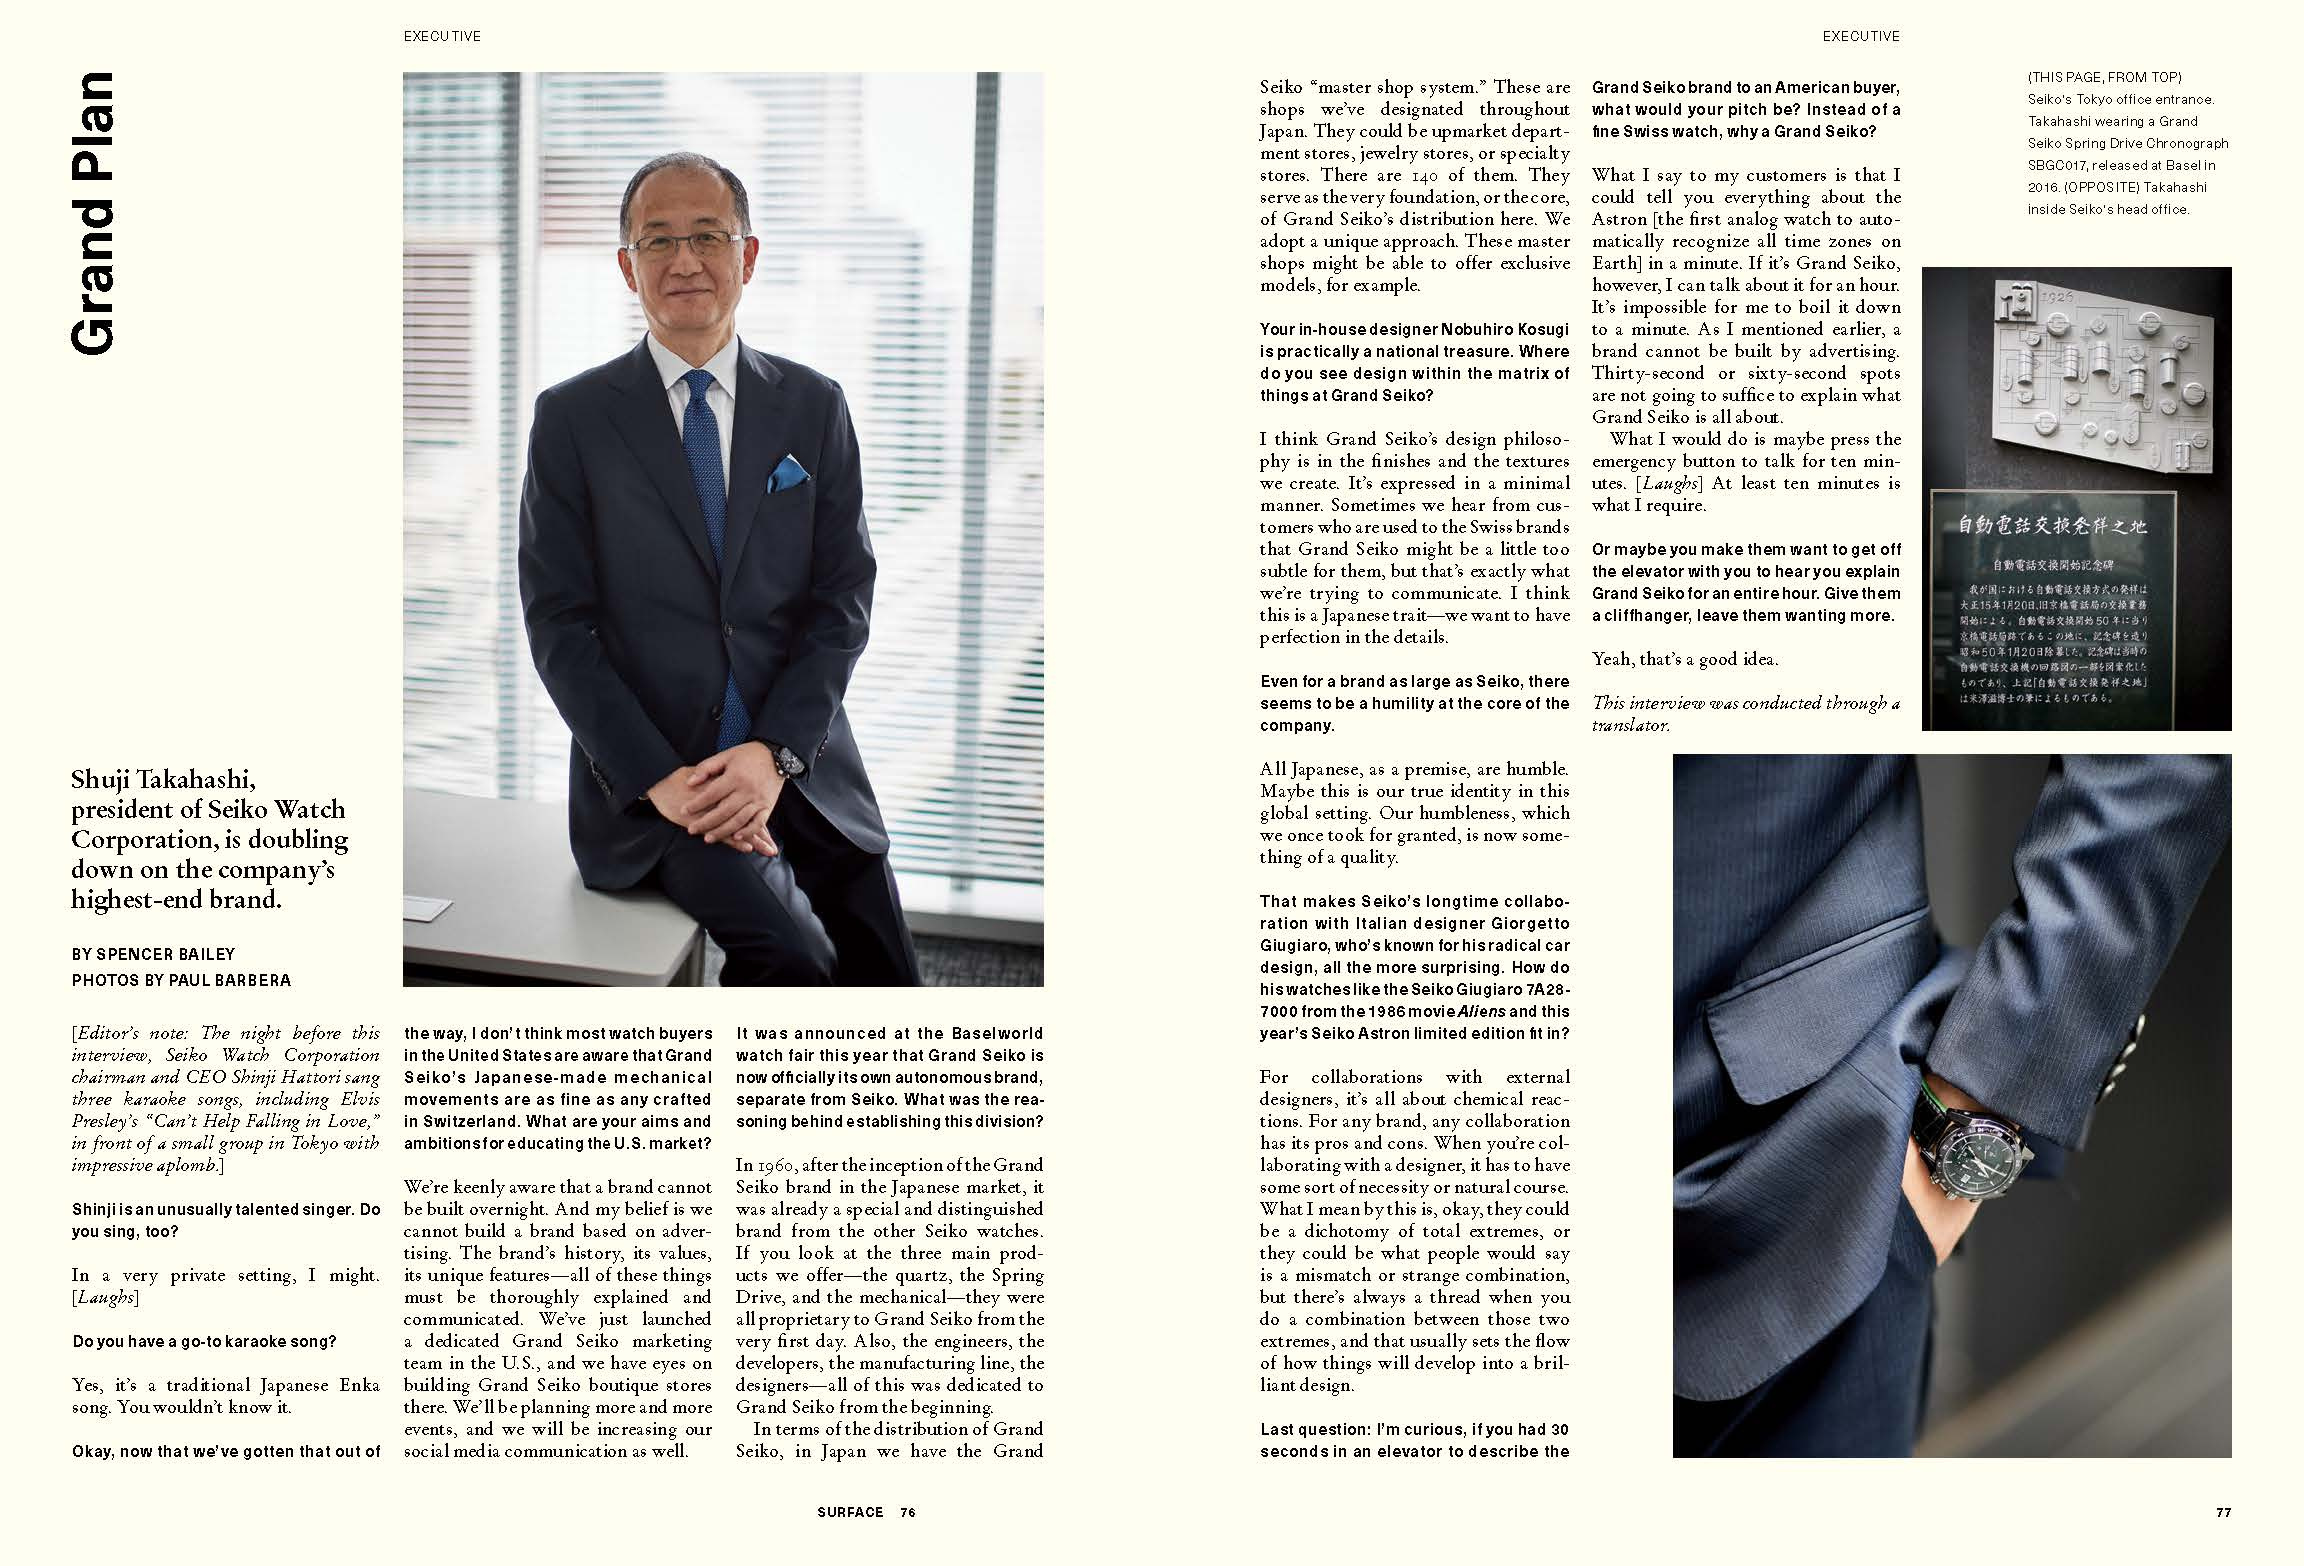 SURFACE_143_EXECUTIVE_Page_2